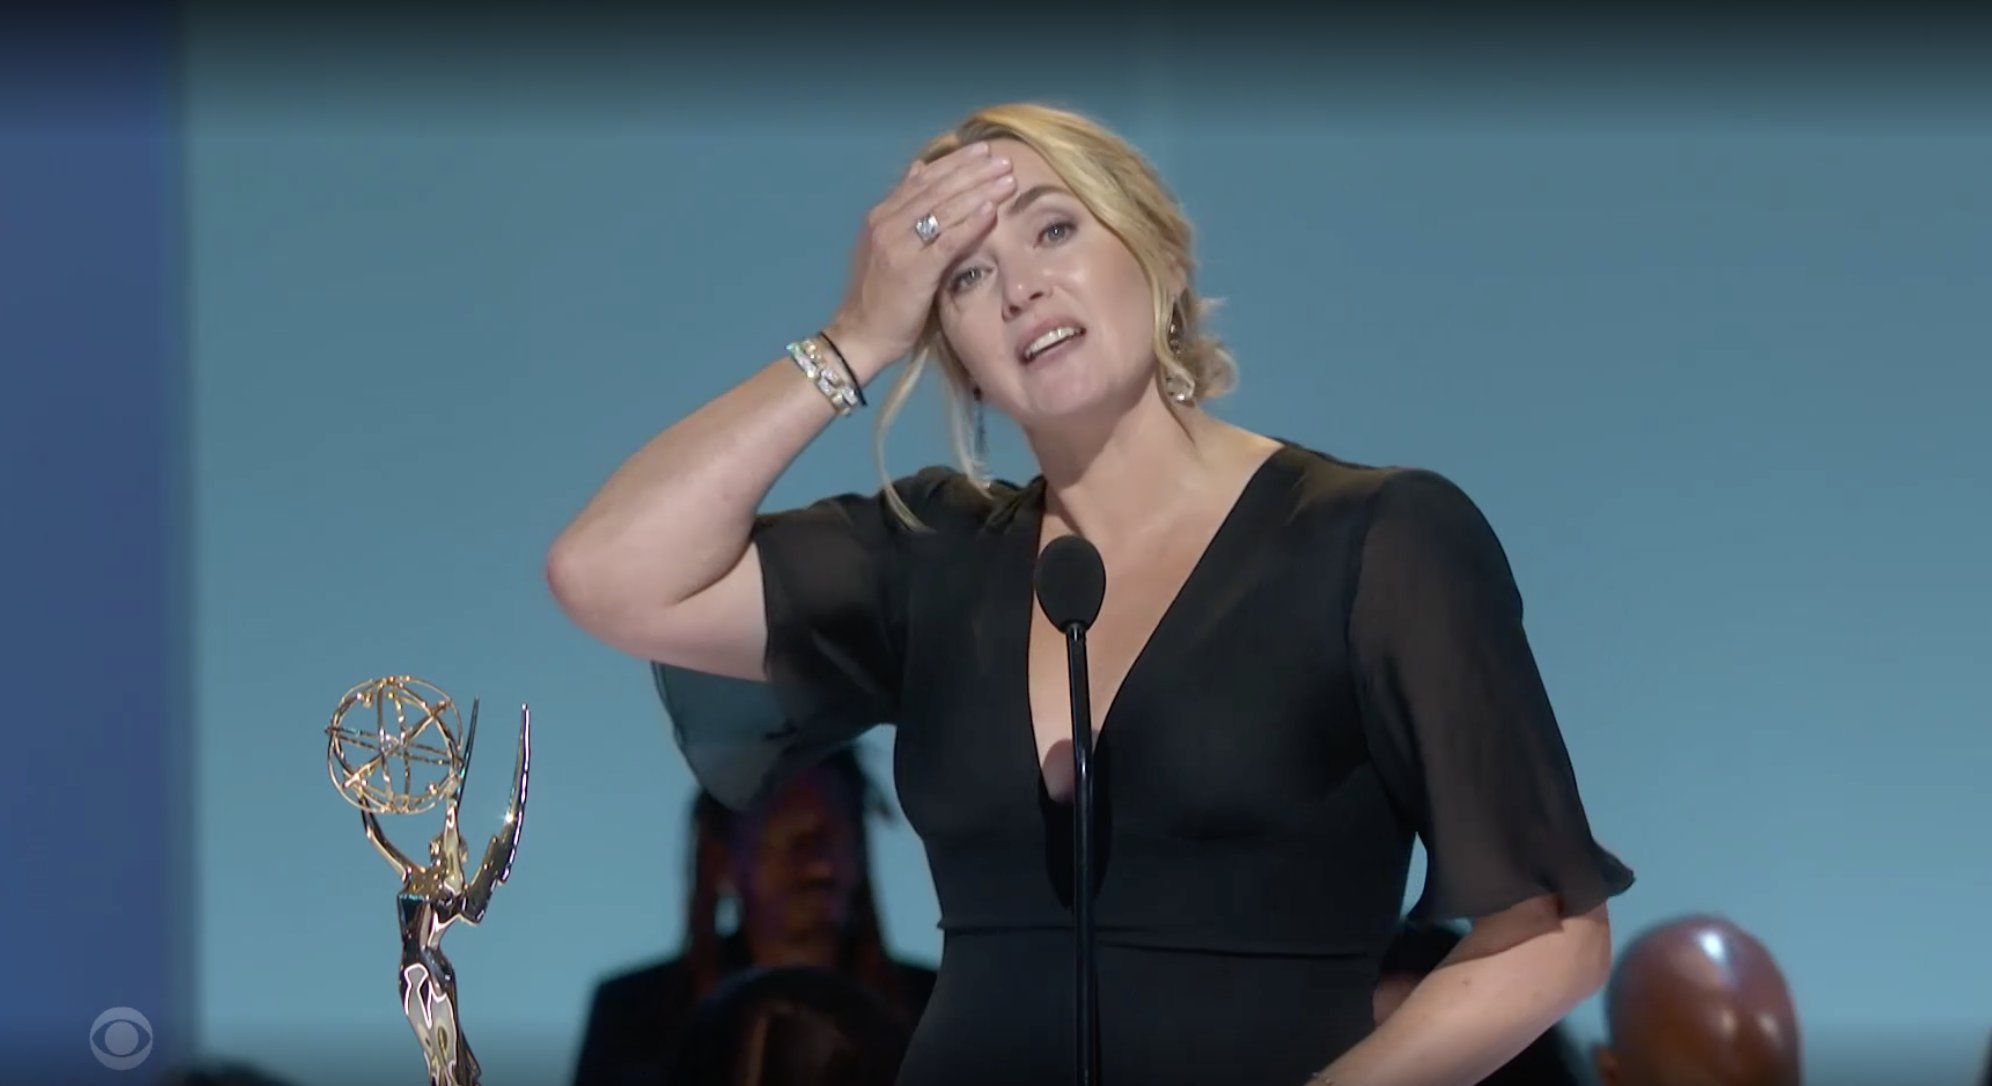 Emmy 2021: Kate Winslet vince come miglior attrice protagonista grazie a Mare of Easttown